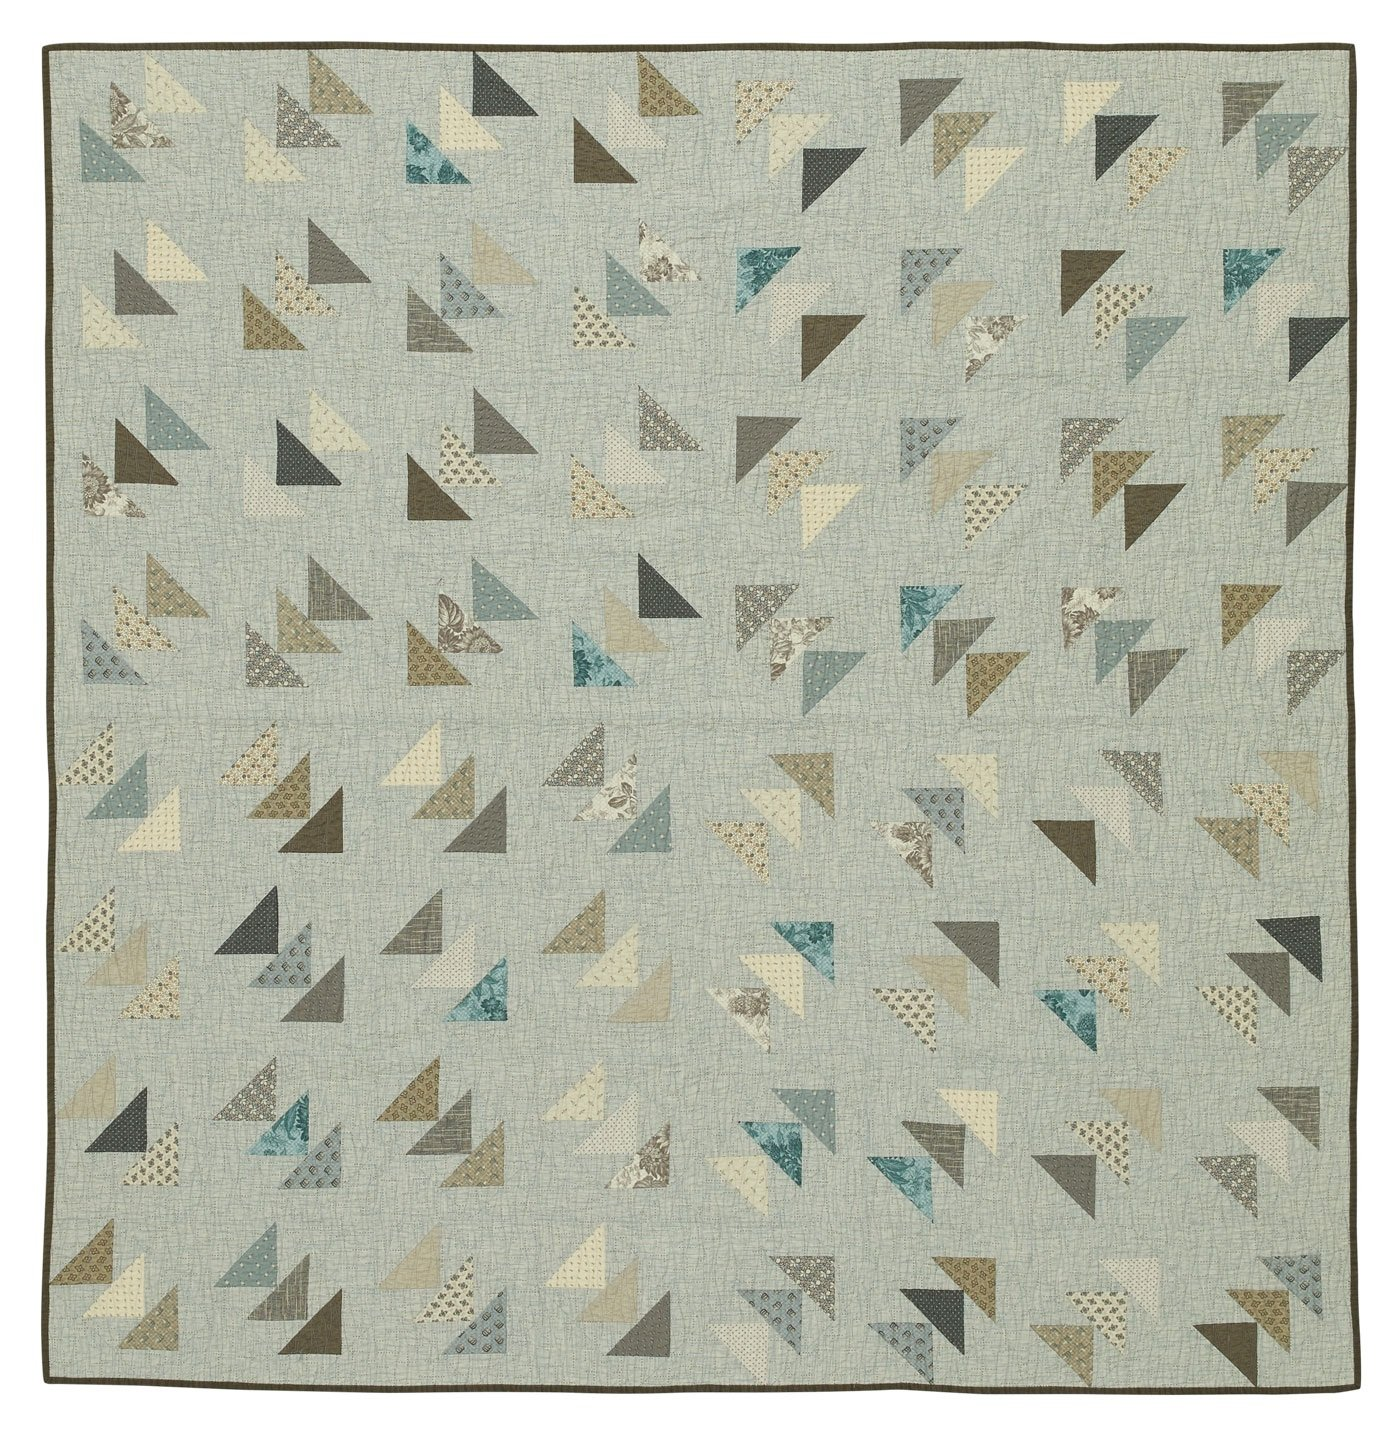 Trade Winds quilt kit